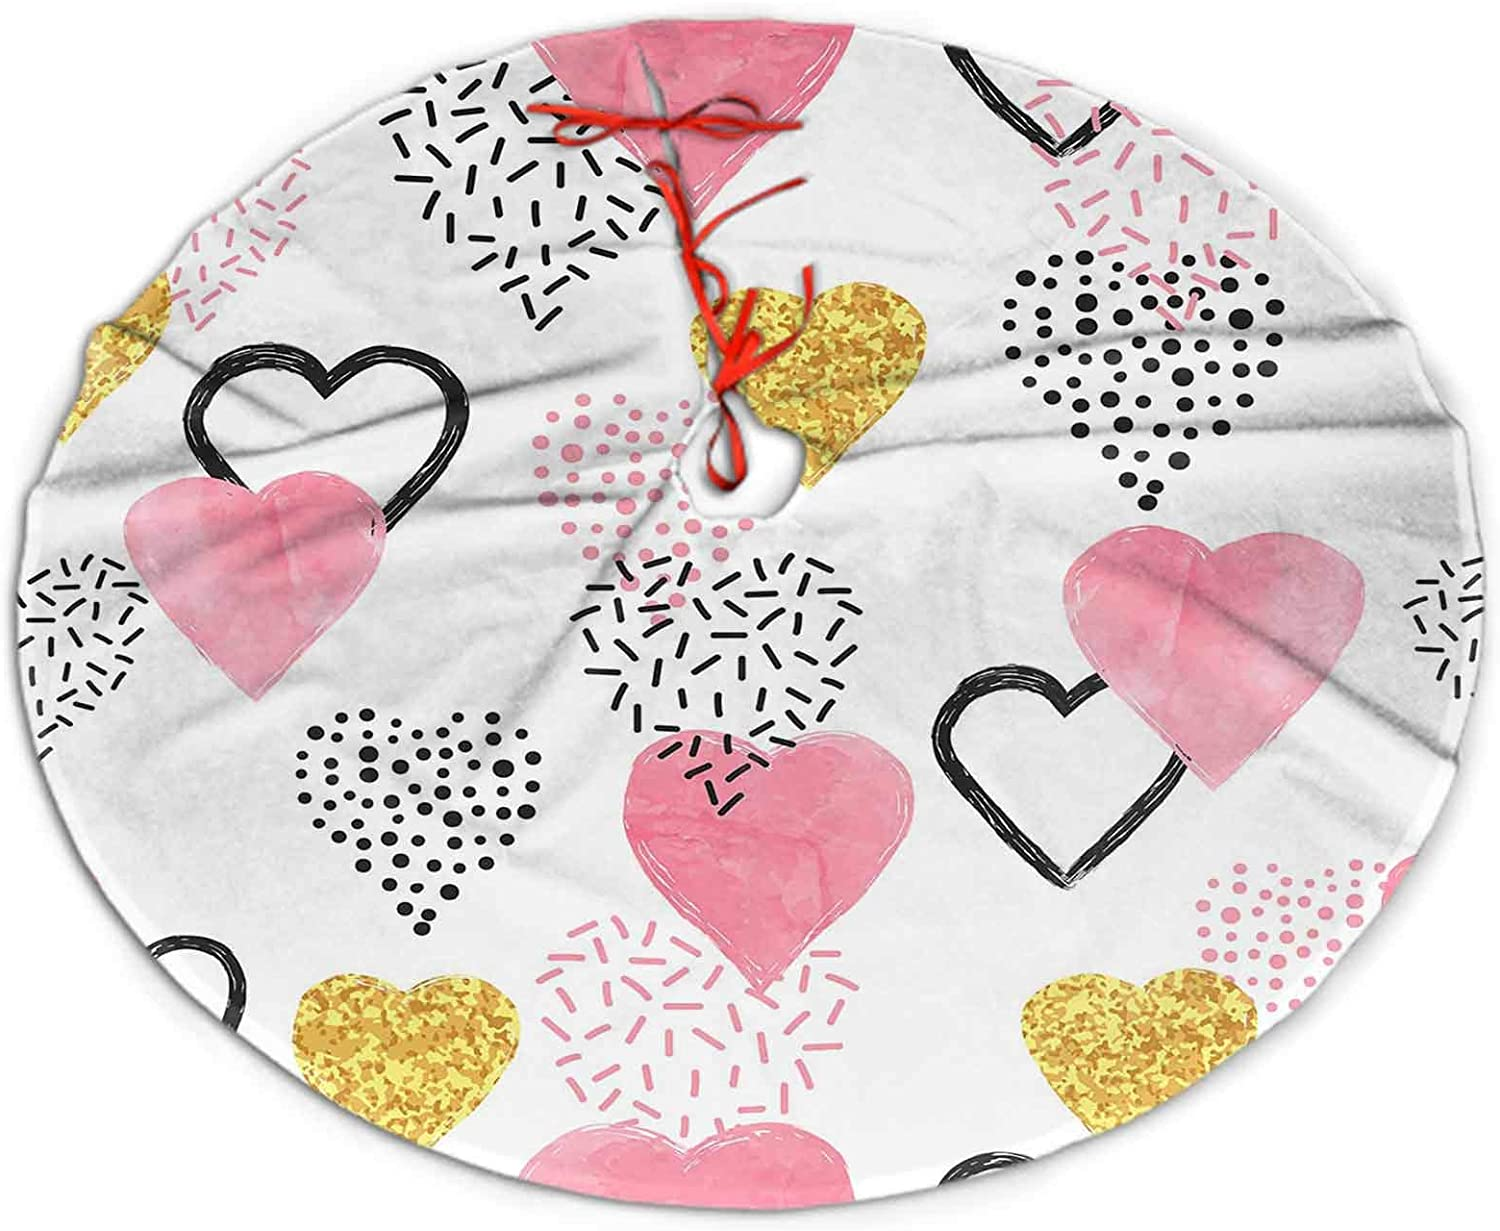 SoSung Christmas Tree Skirt Glittering Gold and Watercolor Pink Hearts Pattern Holiday Decorations for Christmas 30